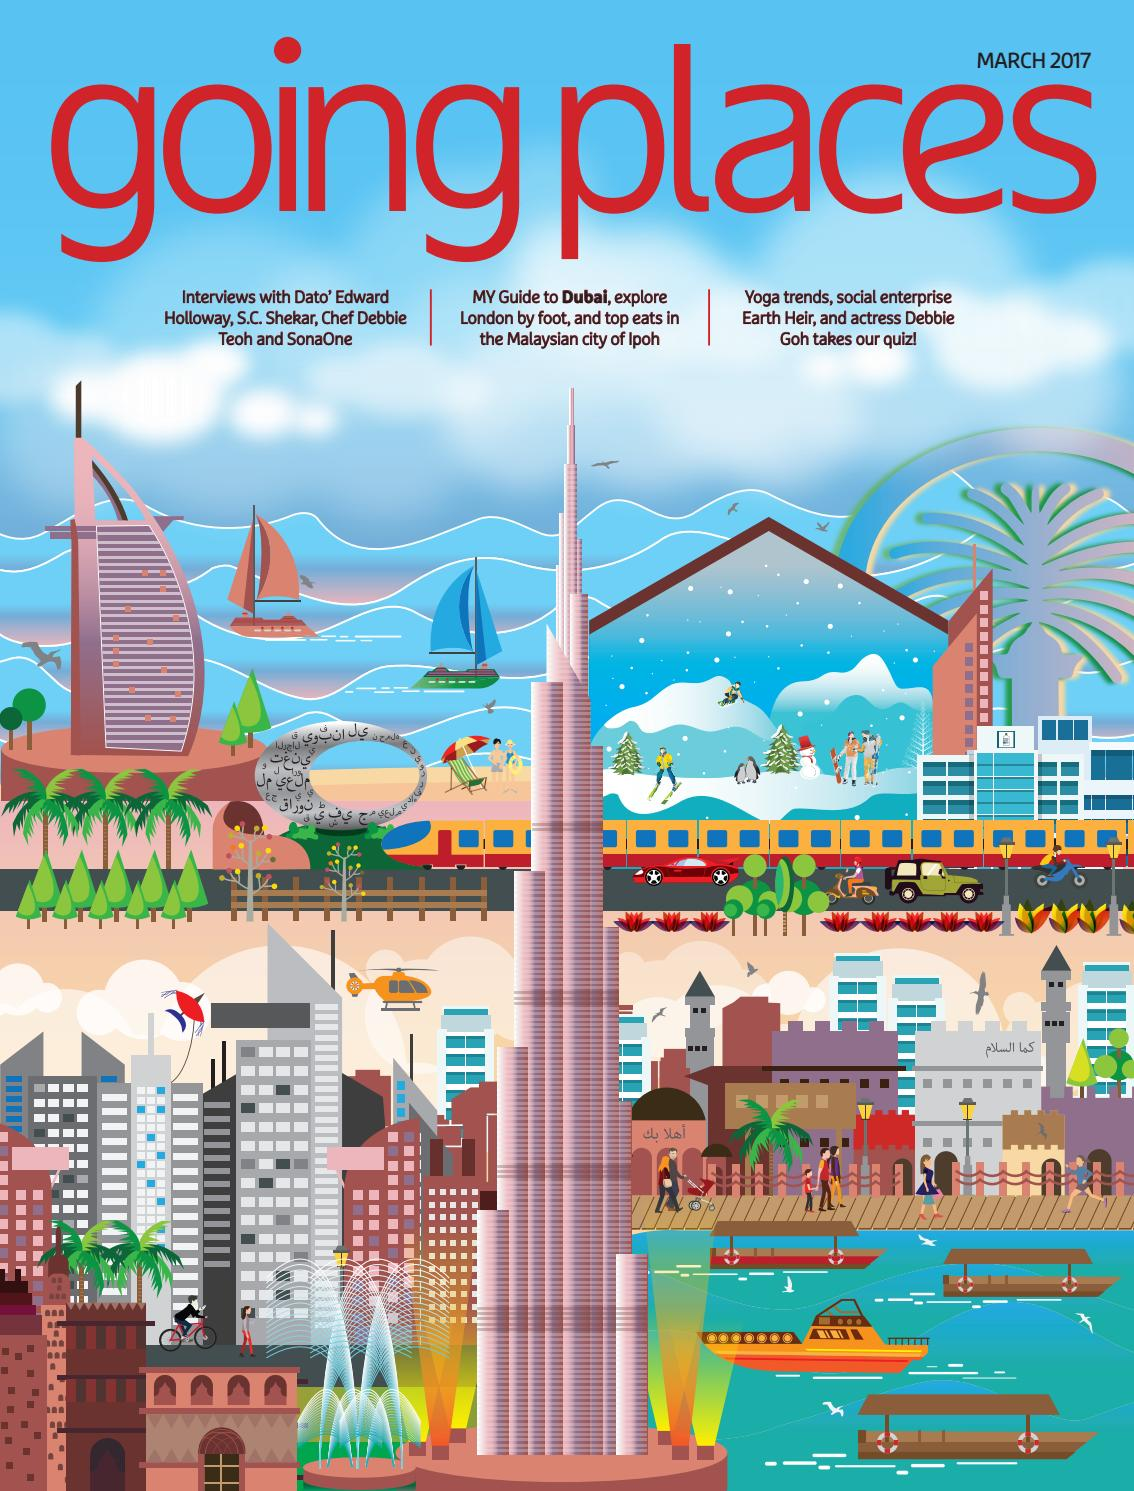 Going Places March 2017 By Spafax Malaysia Issuu Tiket Ocean Park Hongkong Dan Transfer Anak